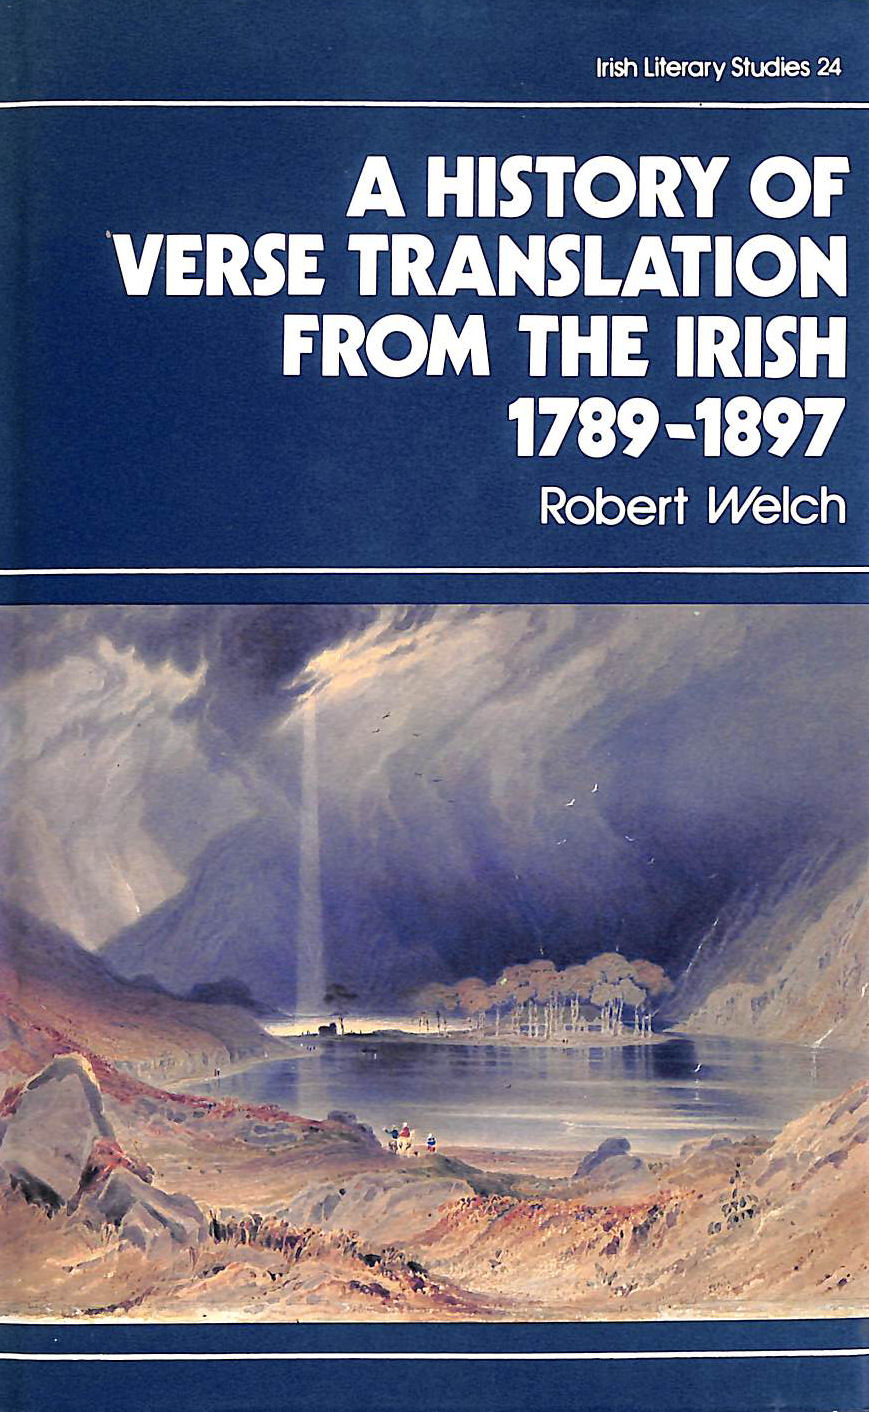 Image for A History of Verse Translation from the Irish, 1789-1897 (Irish Literary Studies)